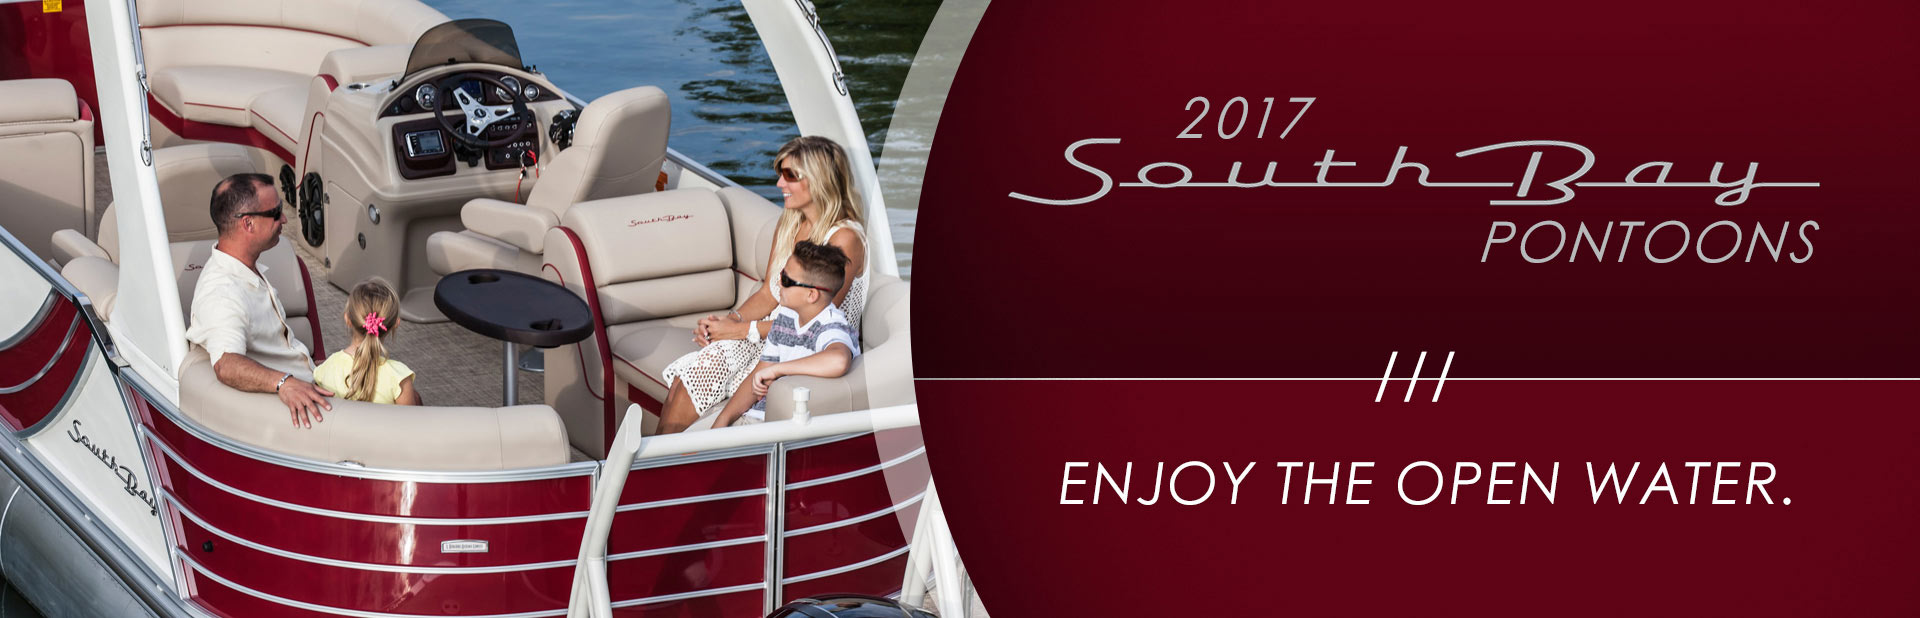 2017 South Bay Pontoons: Click here to view the models.